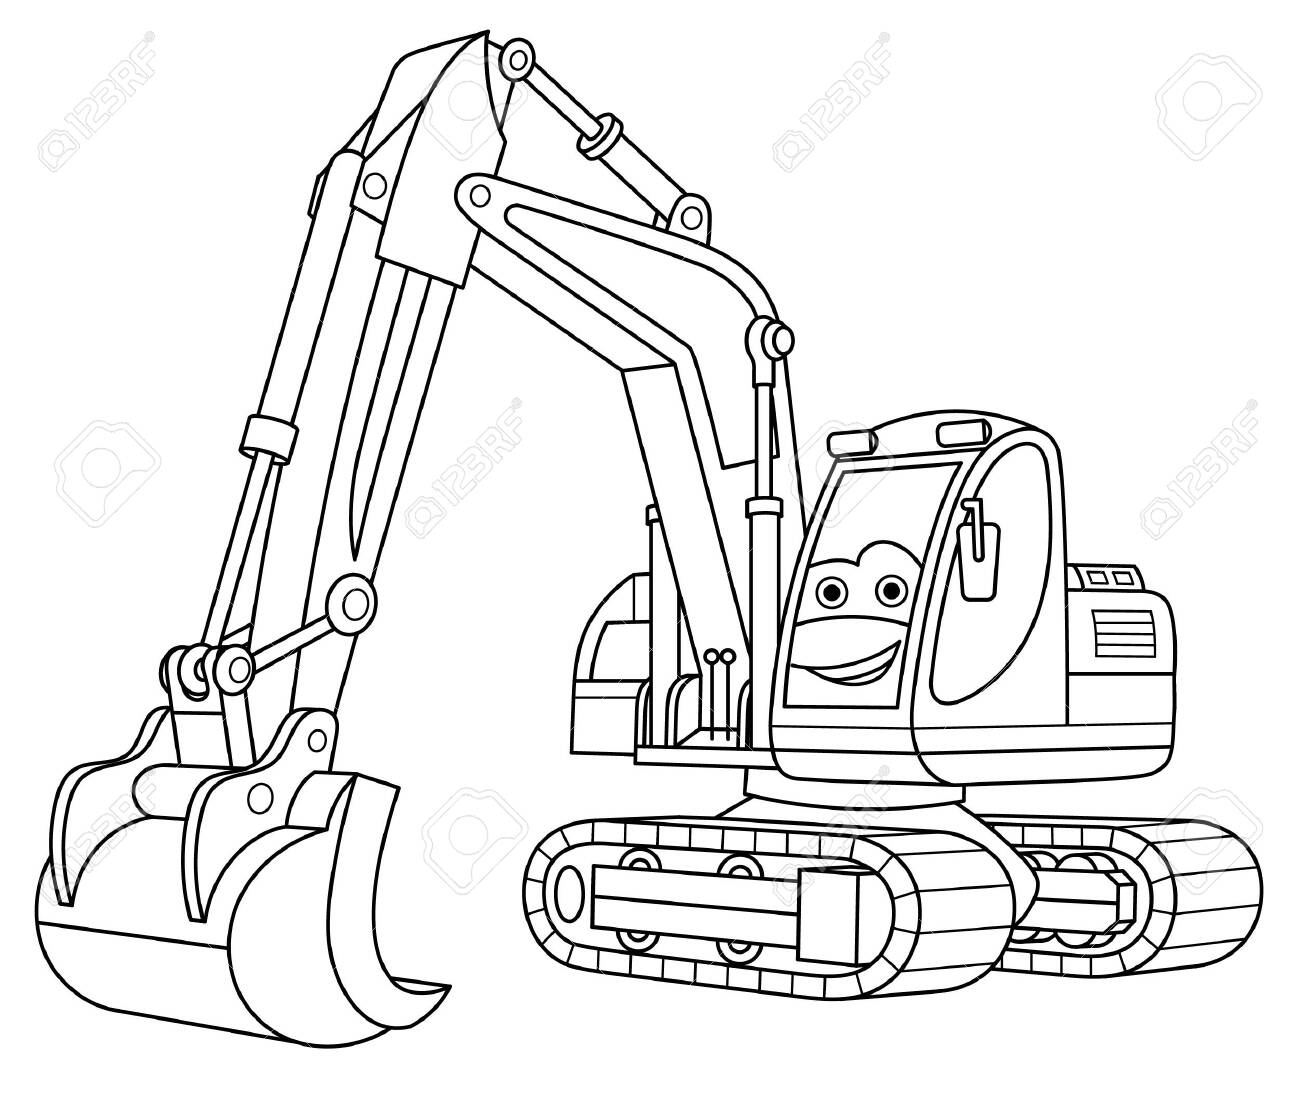 Coloring Page Coloring Picture Of Cartoon Excavator Childish Royalty Free Cliparts Vectors And Stock Illustration Image 135658367